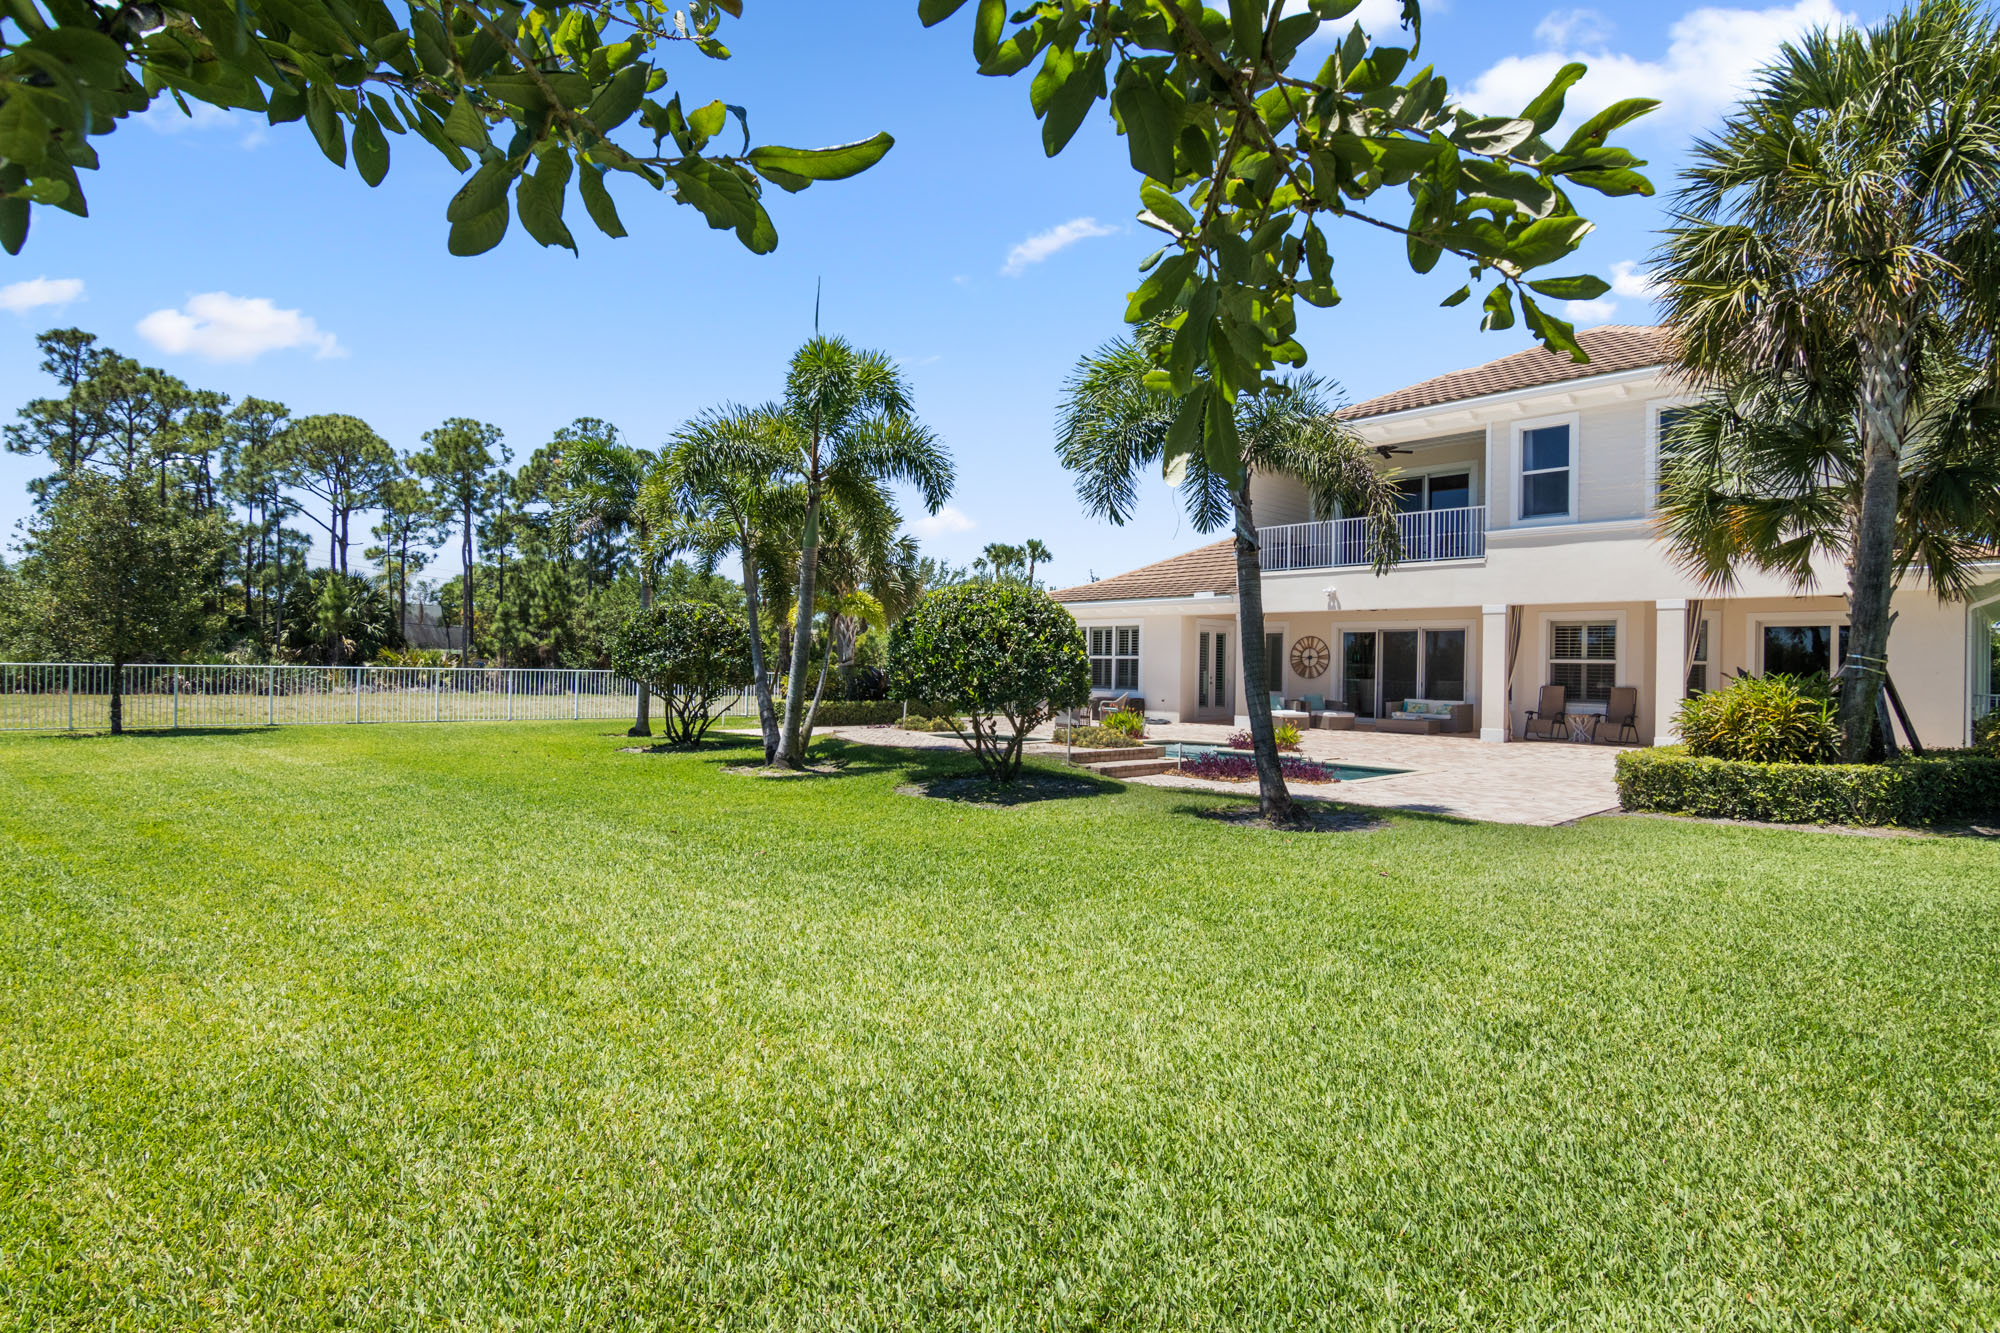 The LOTS are GREENER on the other side | Meyer Lucas Real Estate ...